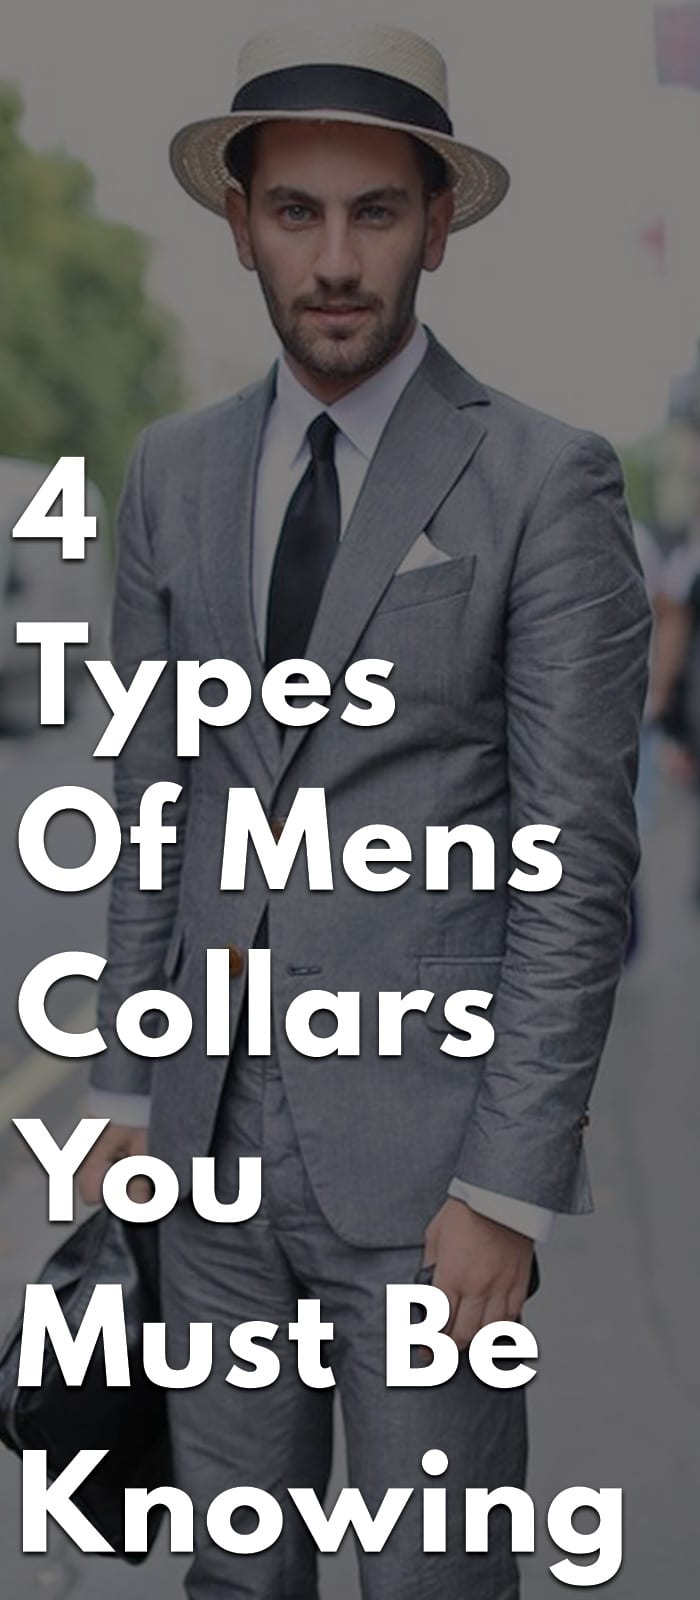 4-Types-of-Mens-Collars-You-Must-Be-Knowing